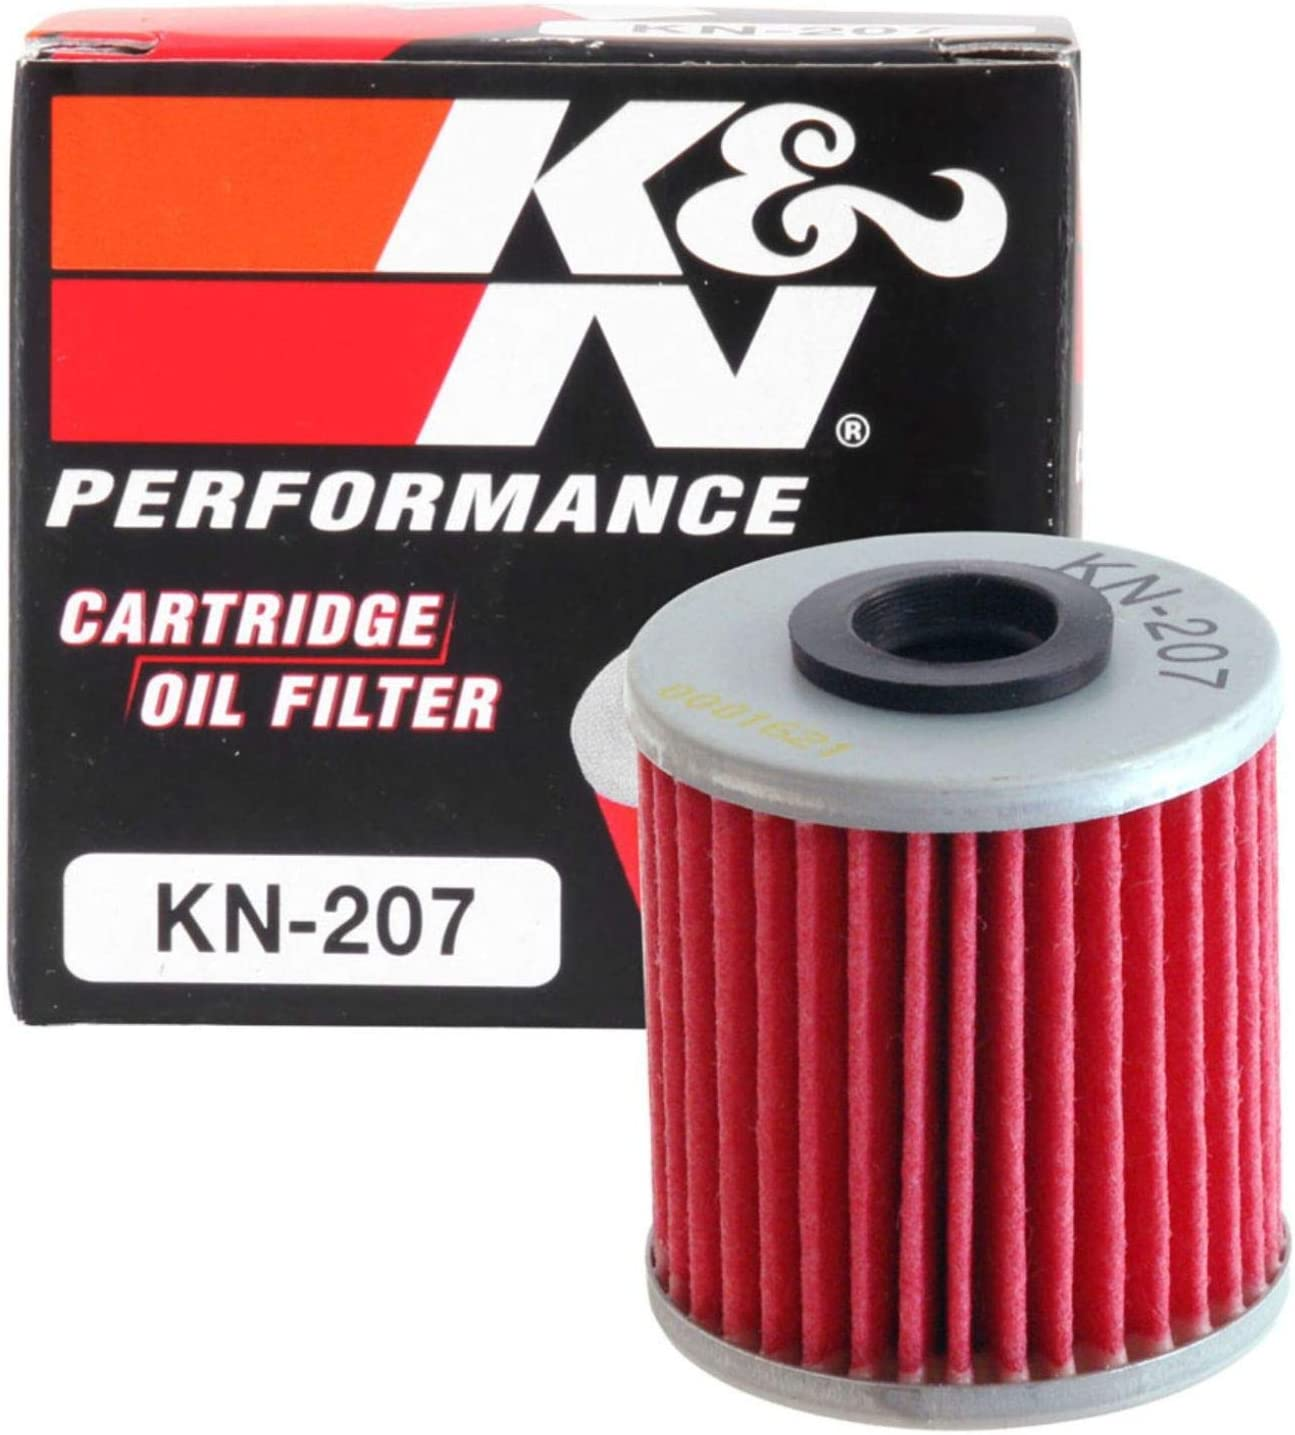 K&N Motorcycle Oil Filter: High Performance, Premium, Designed to be used with Synthetic or Conventional Oils: Fits Select Kawasaki, Suzuki, Beta Vehicles, KN-207